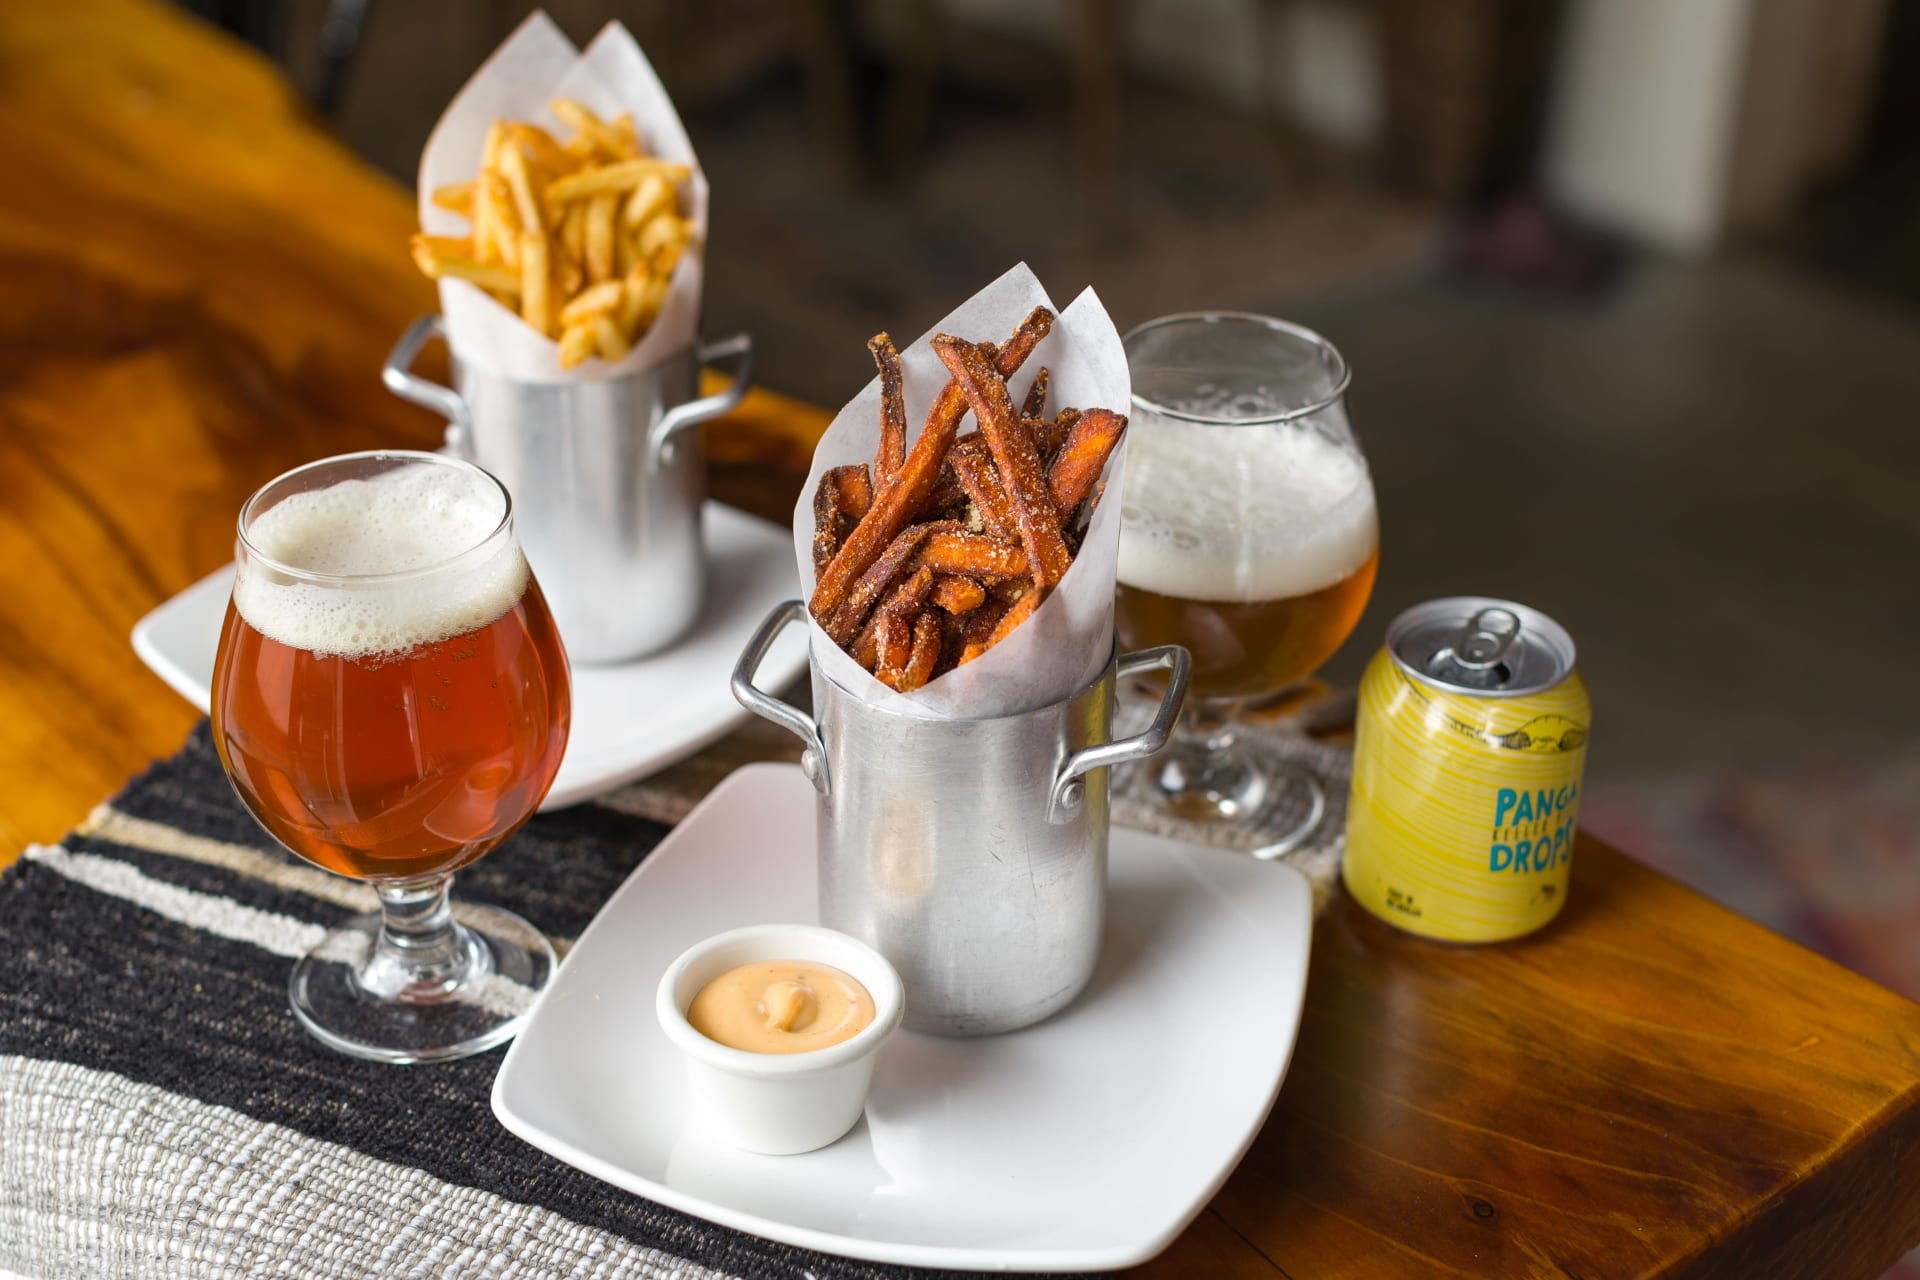 sweet potato fries and beers